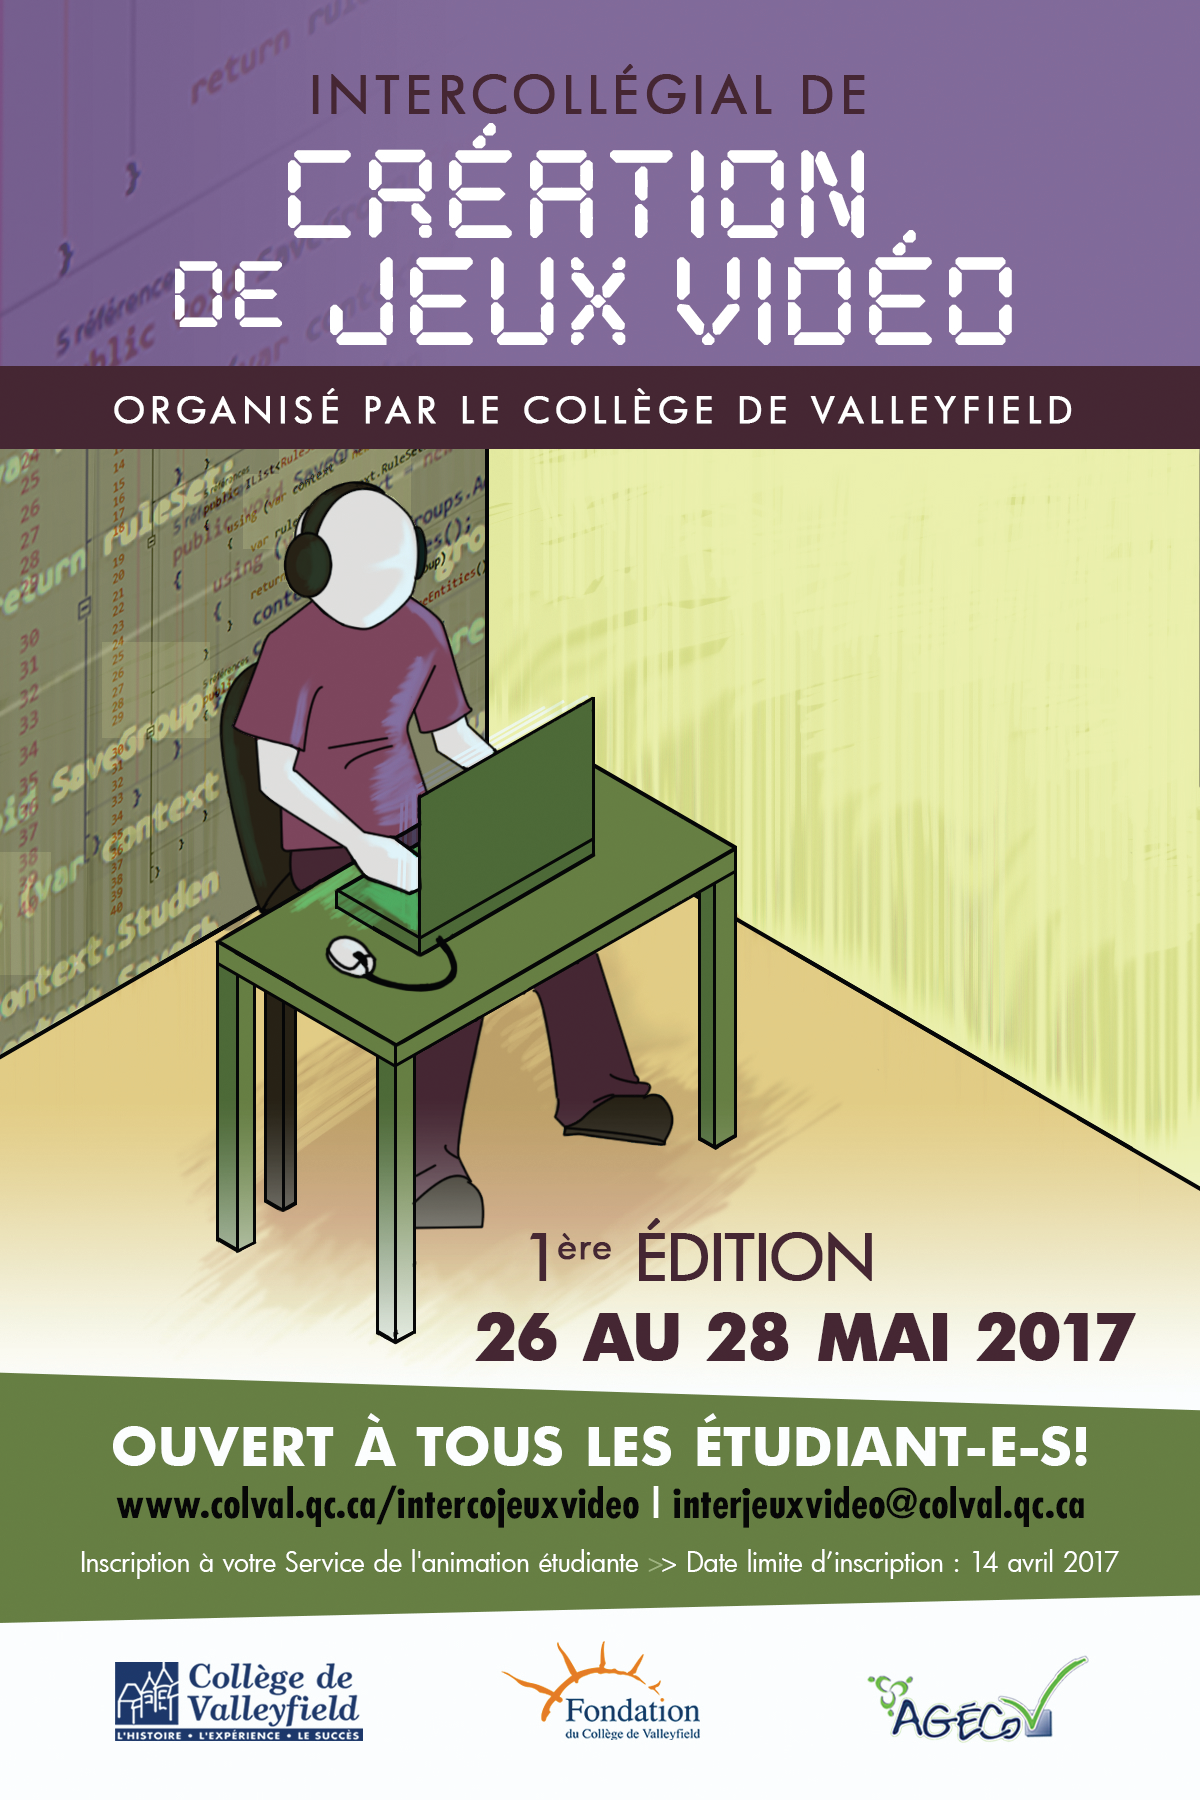 Cegep.valley.interco.jeux.video.2017